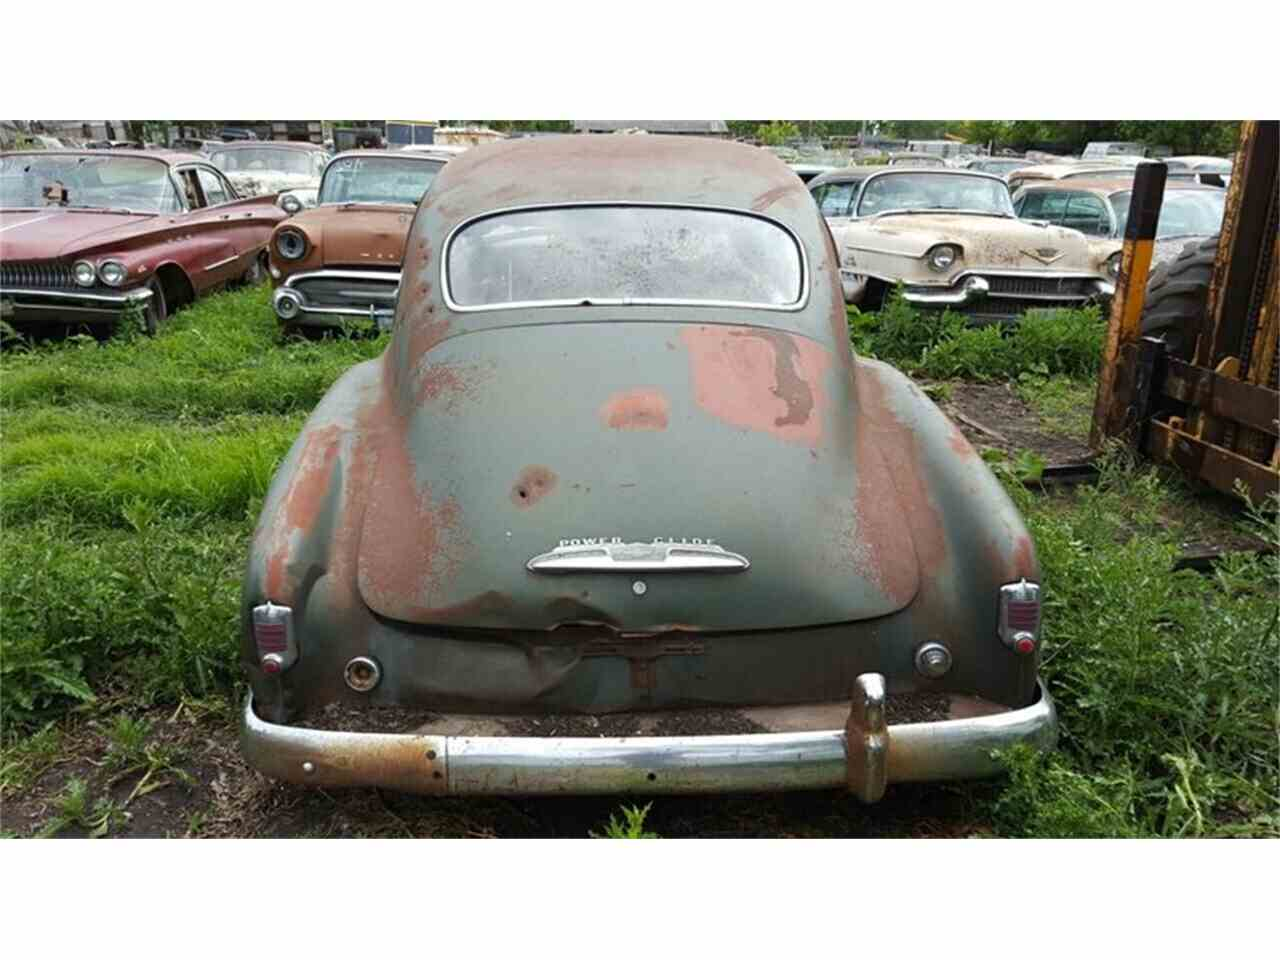 All Chevy 1951 chevrolet fleetline : 1951 Chevrolet Fleetline 2dr Fastback for Sale | ClassicCars.com ...